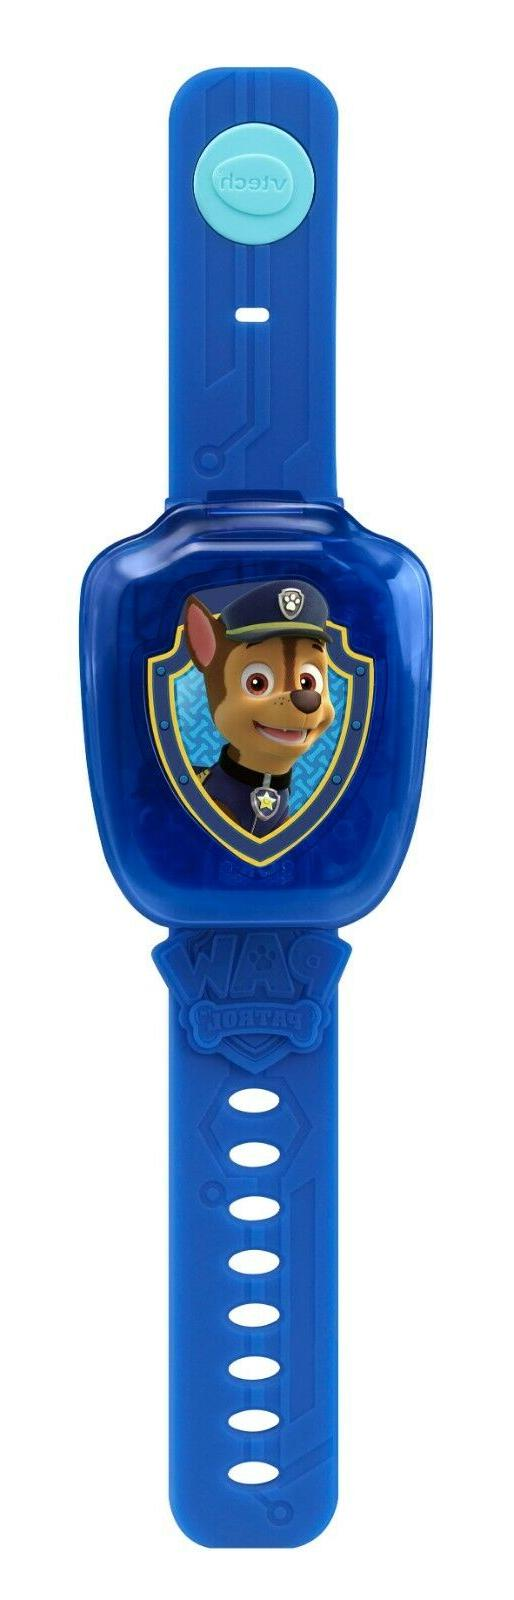 PAW Patrol Chase Learning